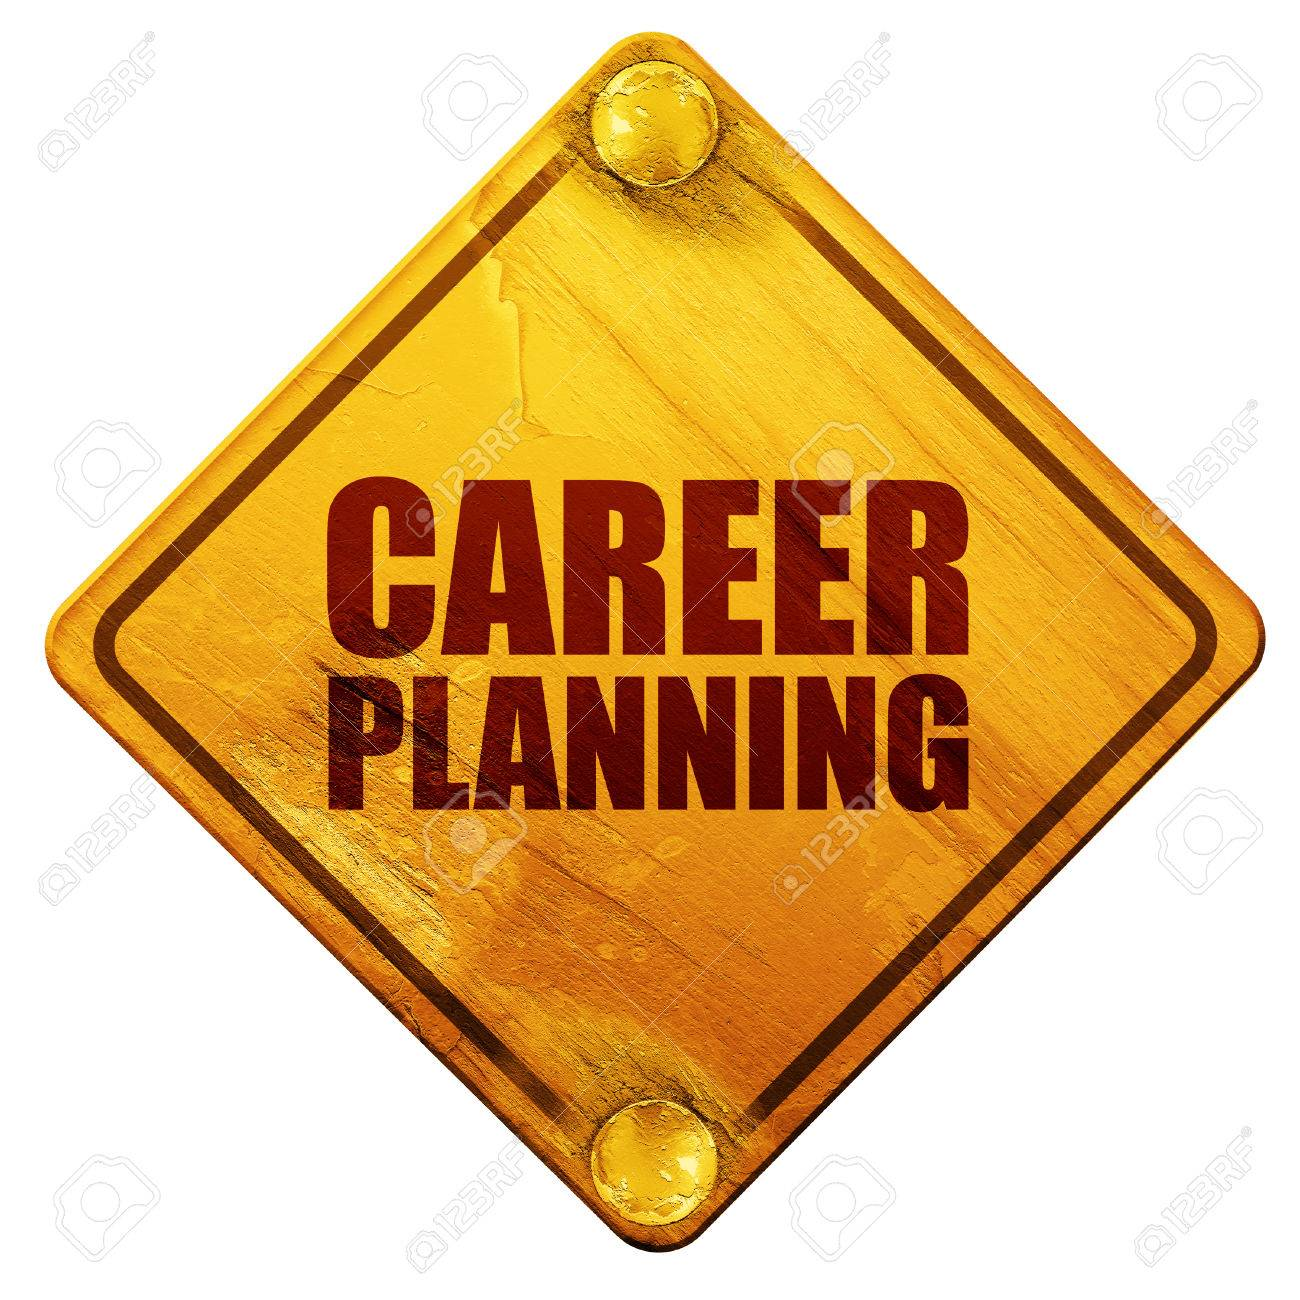 career planning d rendering yellow road sign on a white stock photo career planning 3d rendering yellow road sign on a white background